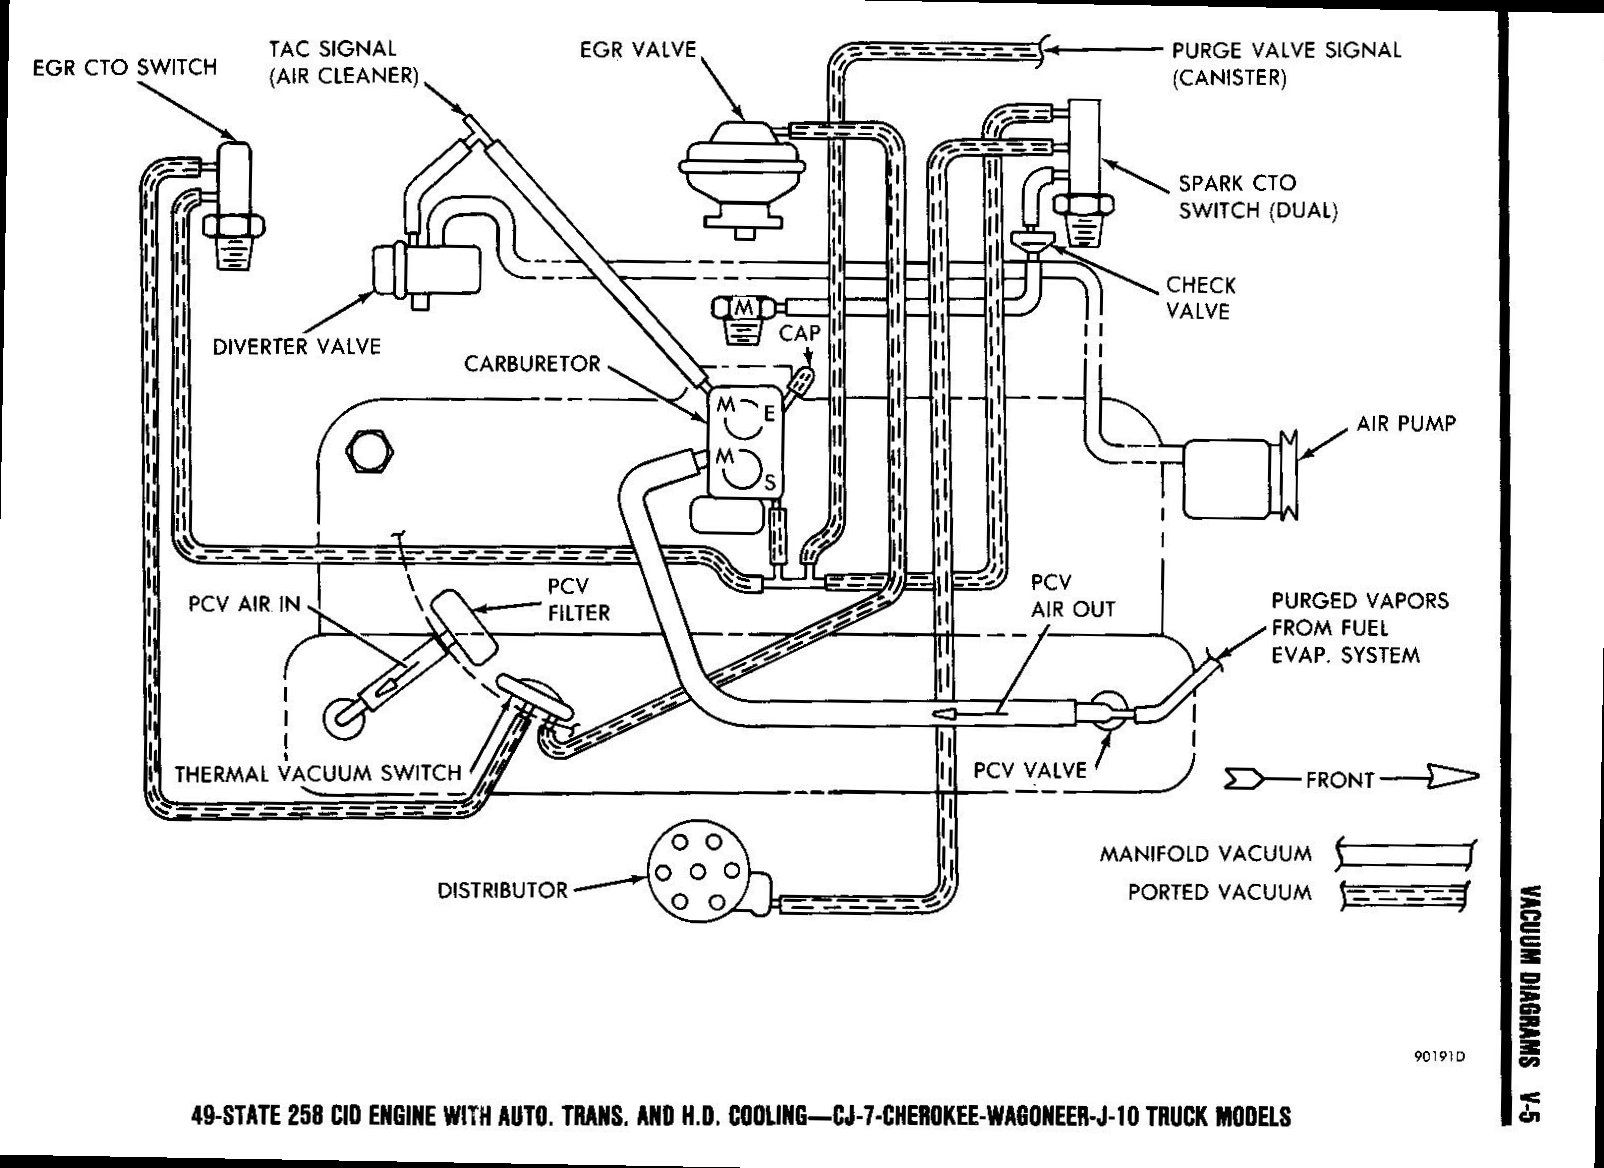 jeep 360 engine diagram 1979 jeep cj7 vacuum diagram jeep grand 87 Jeep CJ7 Wiring-Diagram